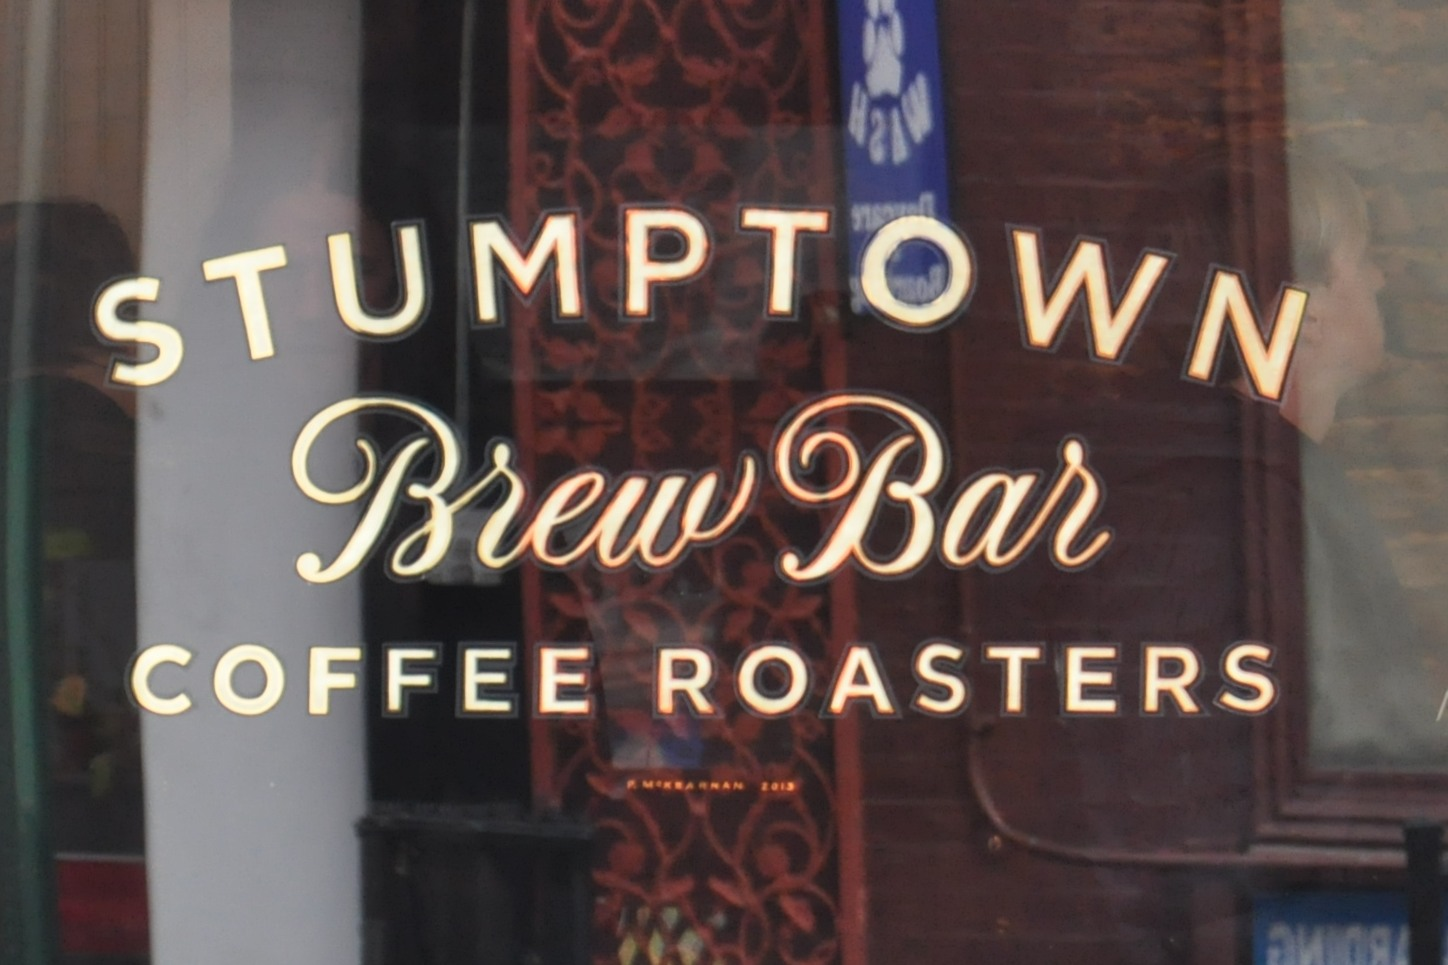 "The writing on the window of the Brew Bar part of Stumptown, W 8th St,, New York City. ""STUMPTOWN"" over ""COFFEE ROASTERS"" in capitals, with ""Brew Bar"" in cursive script in between."